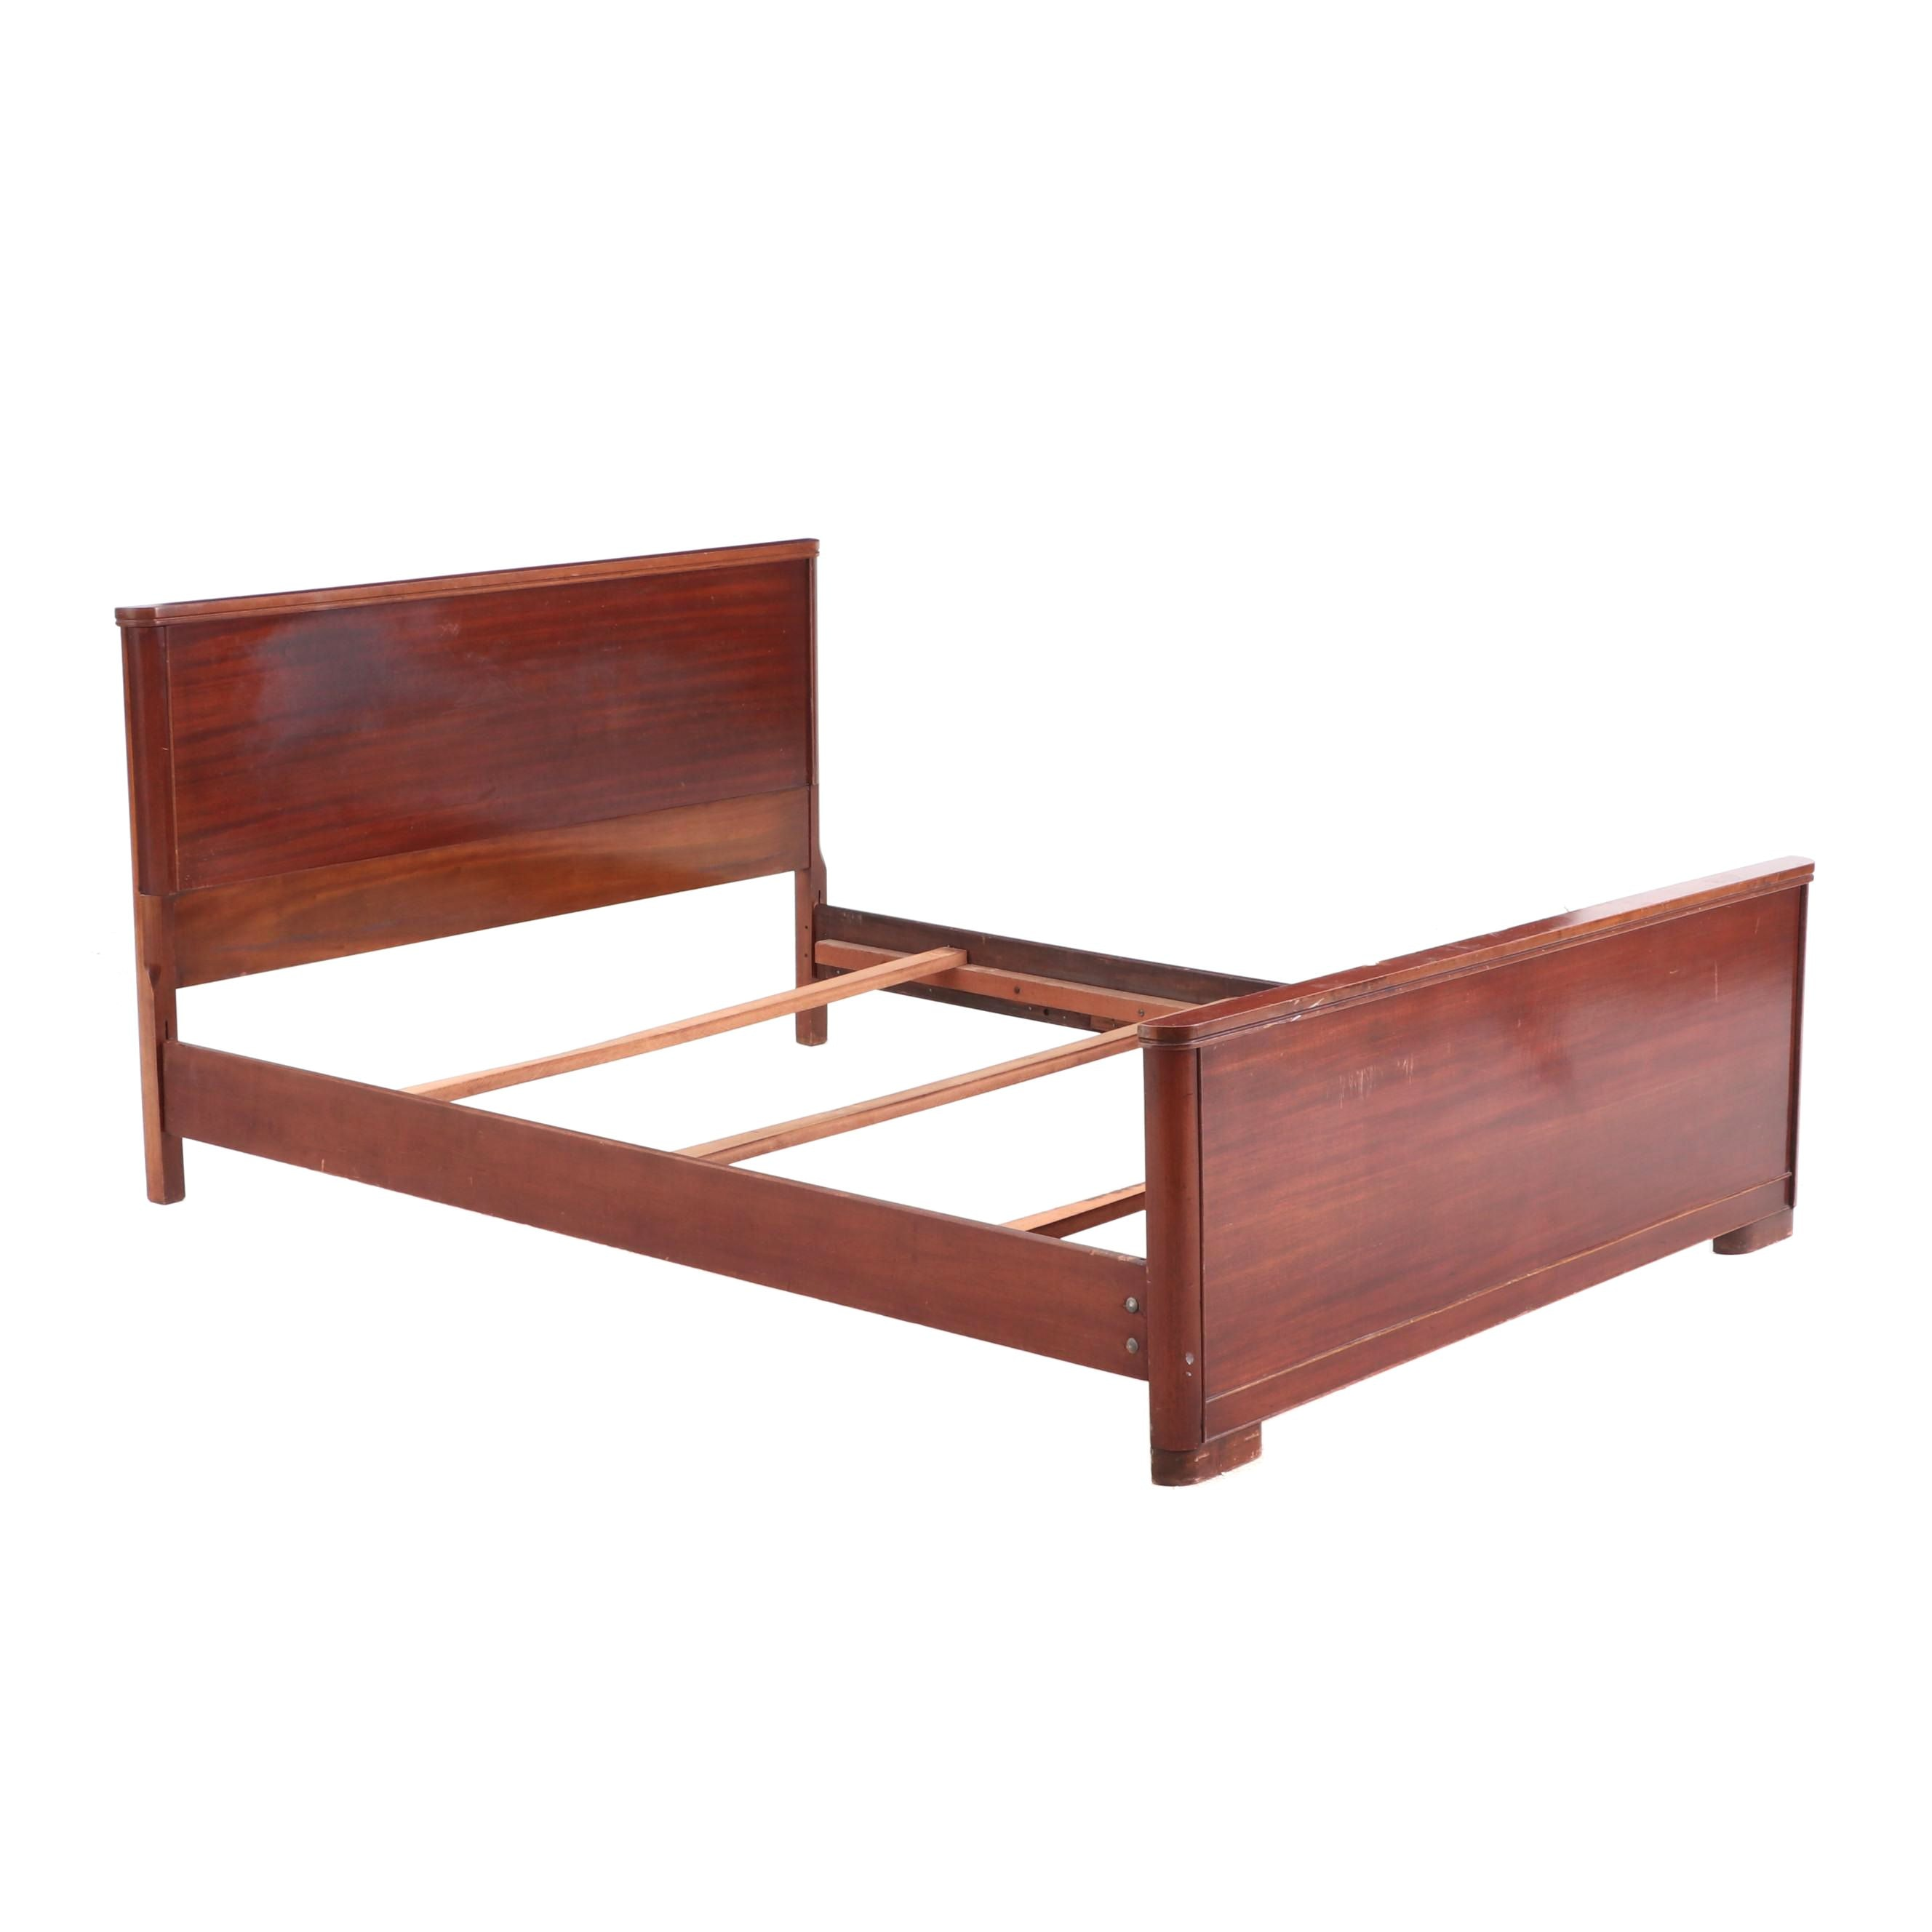 Vintage Full Size Bed Frame in Walnut with Slats